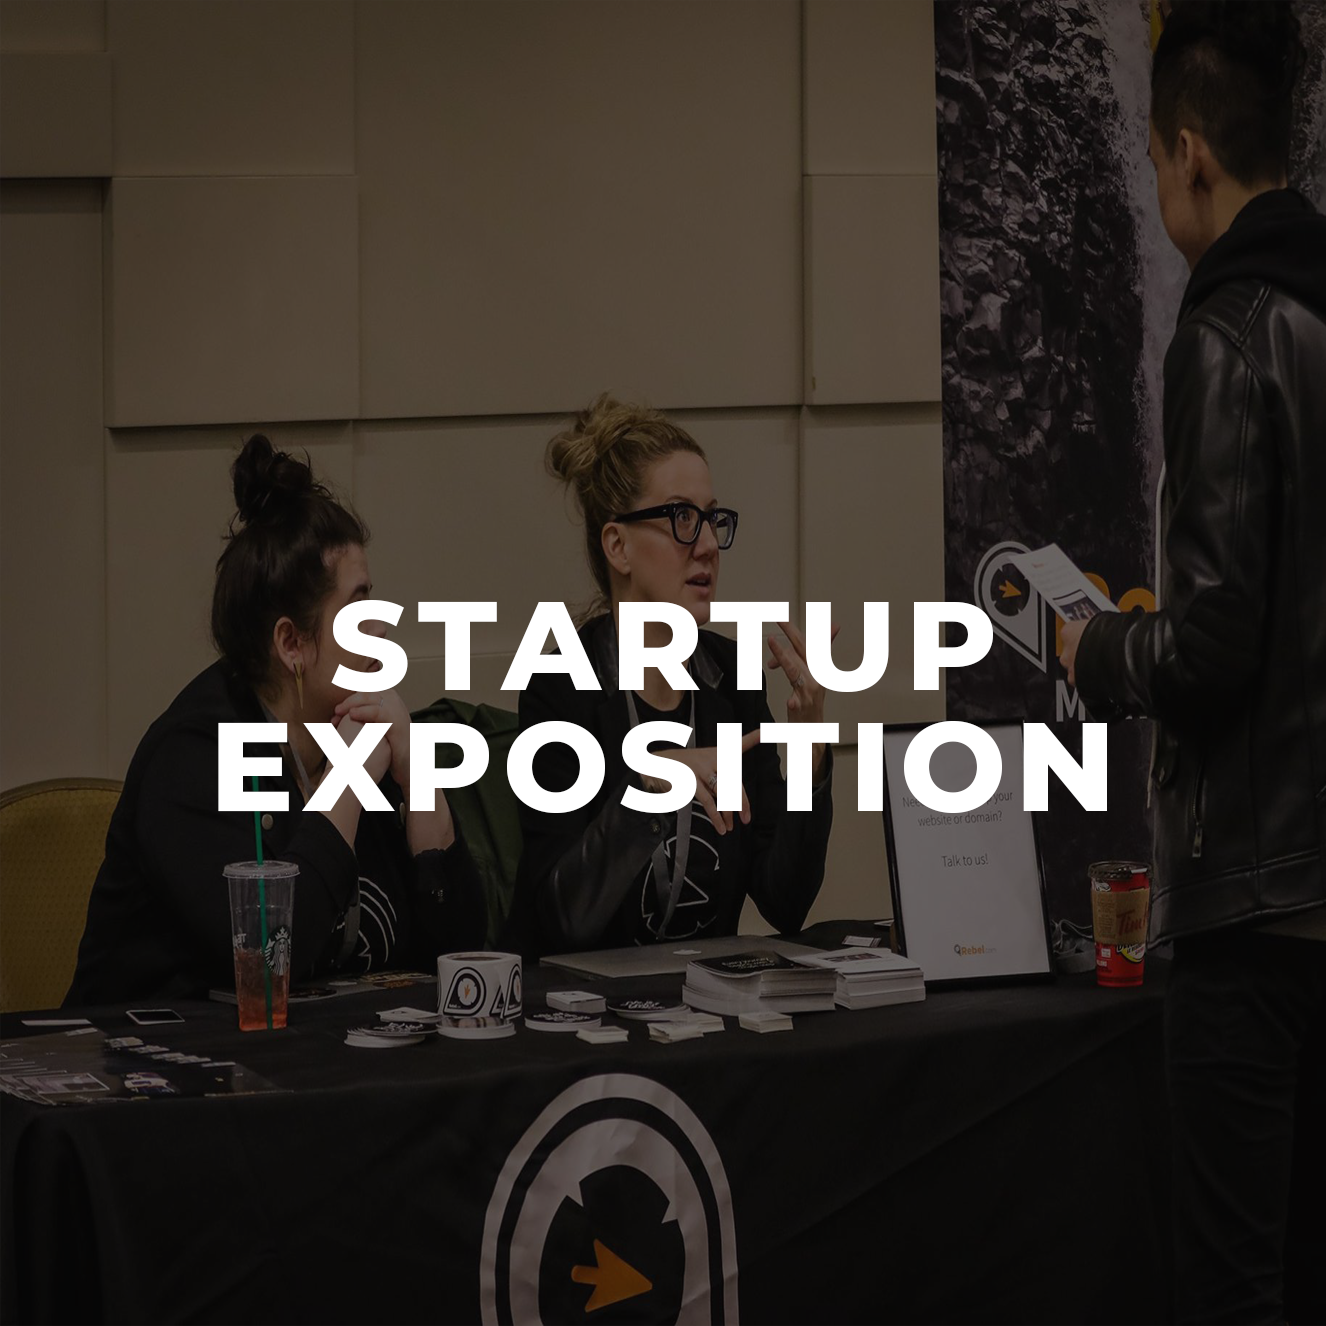 Network with Canada's fastest growing companies. Be the first to know about exclusive offerings, programs and even on-site interview recruitment opportunities.